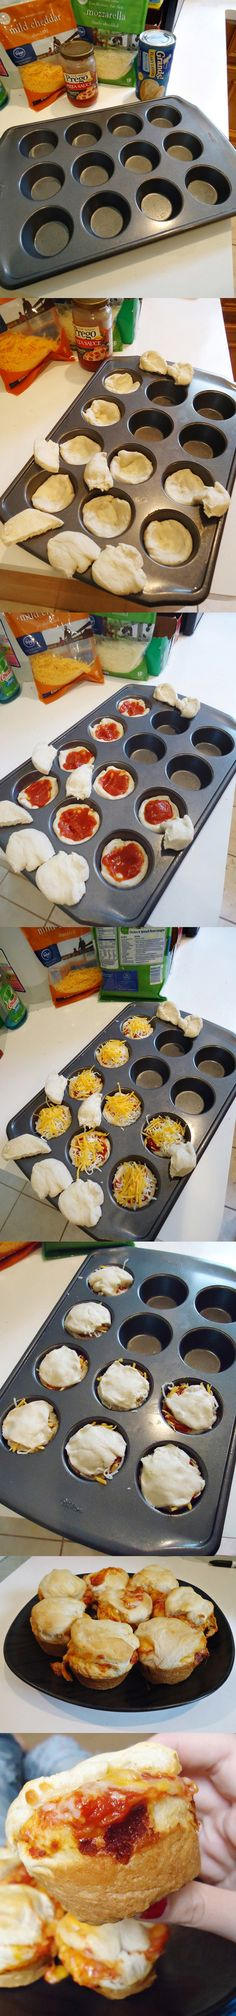 Pizza cupcakes - Made this ! Super delicious and moist. Used a larger cupcake pan though and mozzarella cheese. Think Food, I Love Food, Food For Thought, Good Food, Yummy Food, Yummy Eats, Pizza Recipes, Appetizer Recipes, Snack Recipes